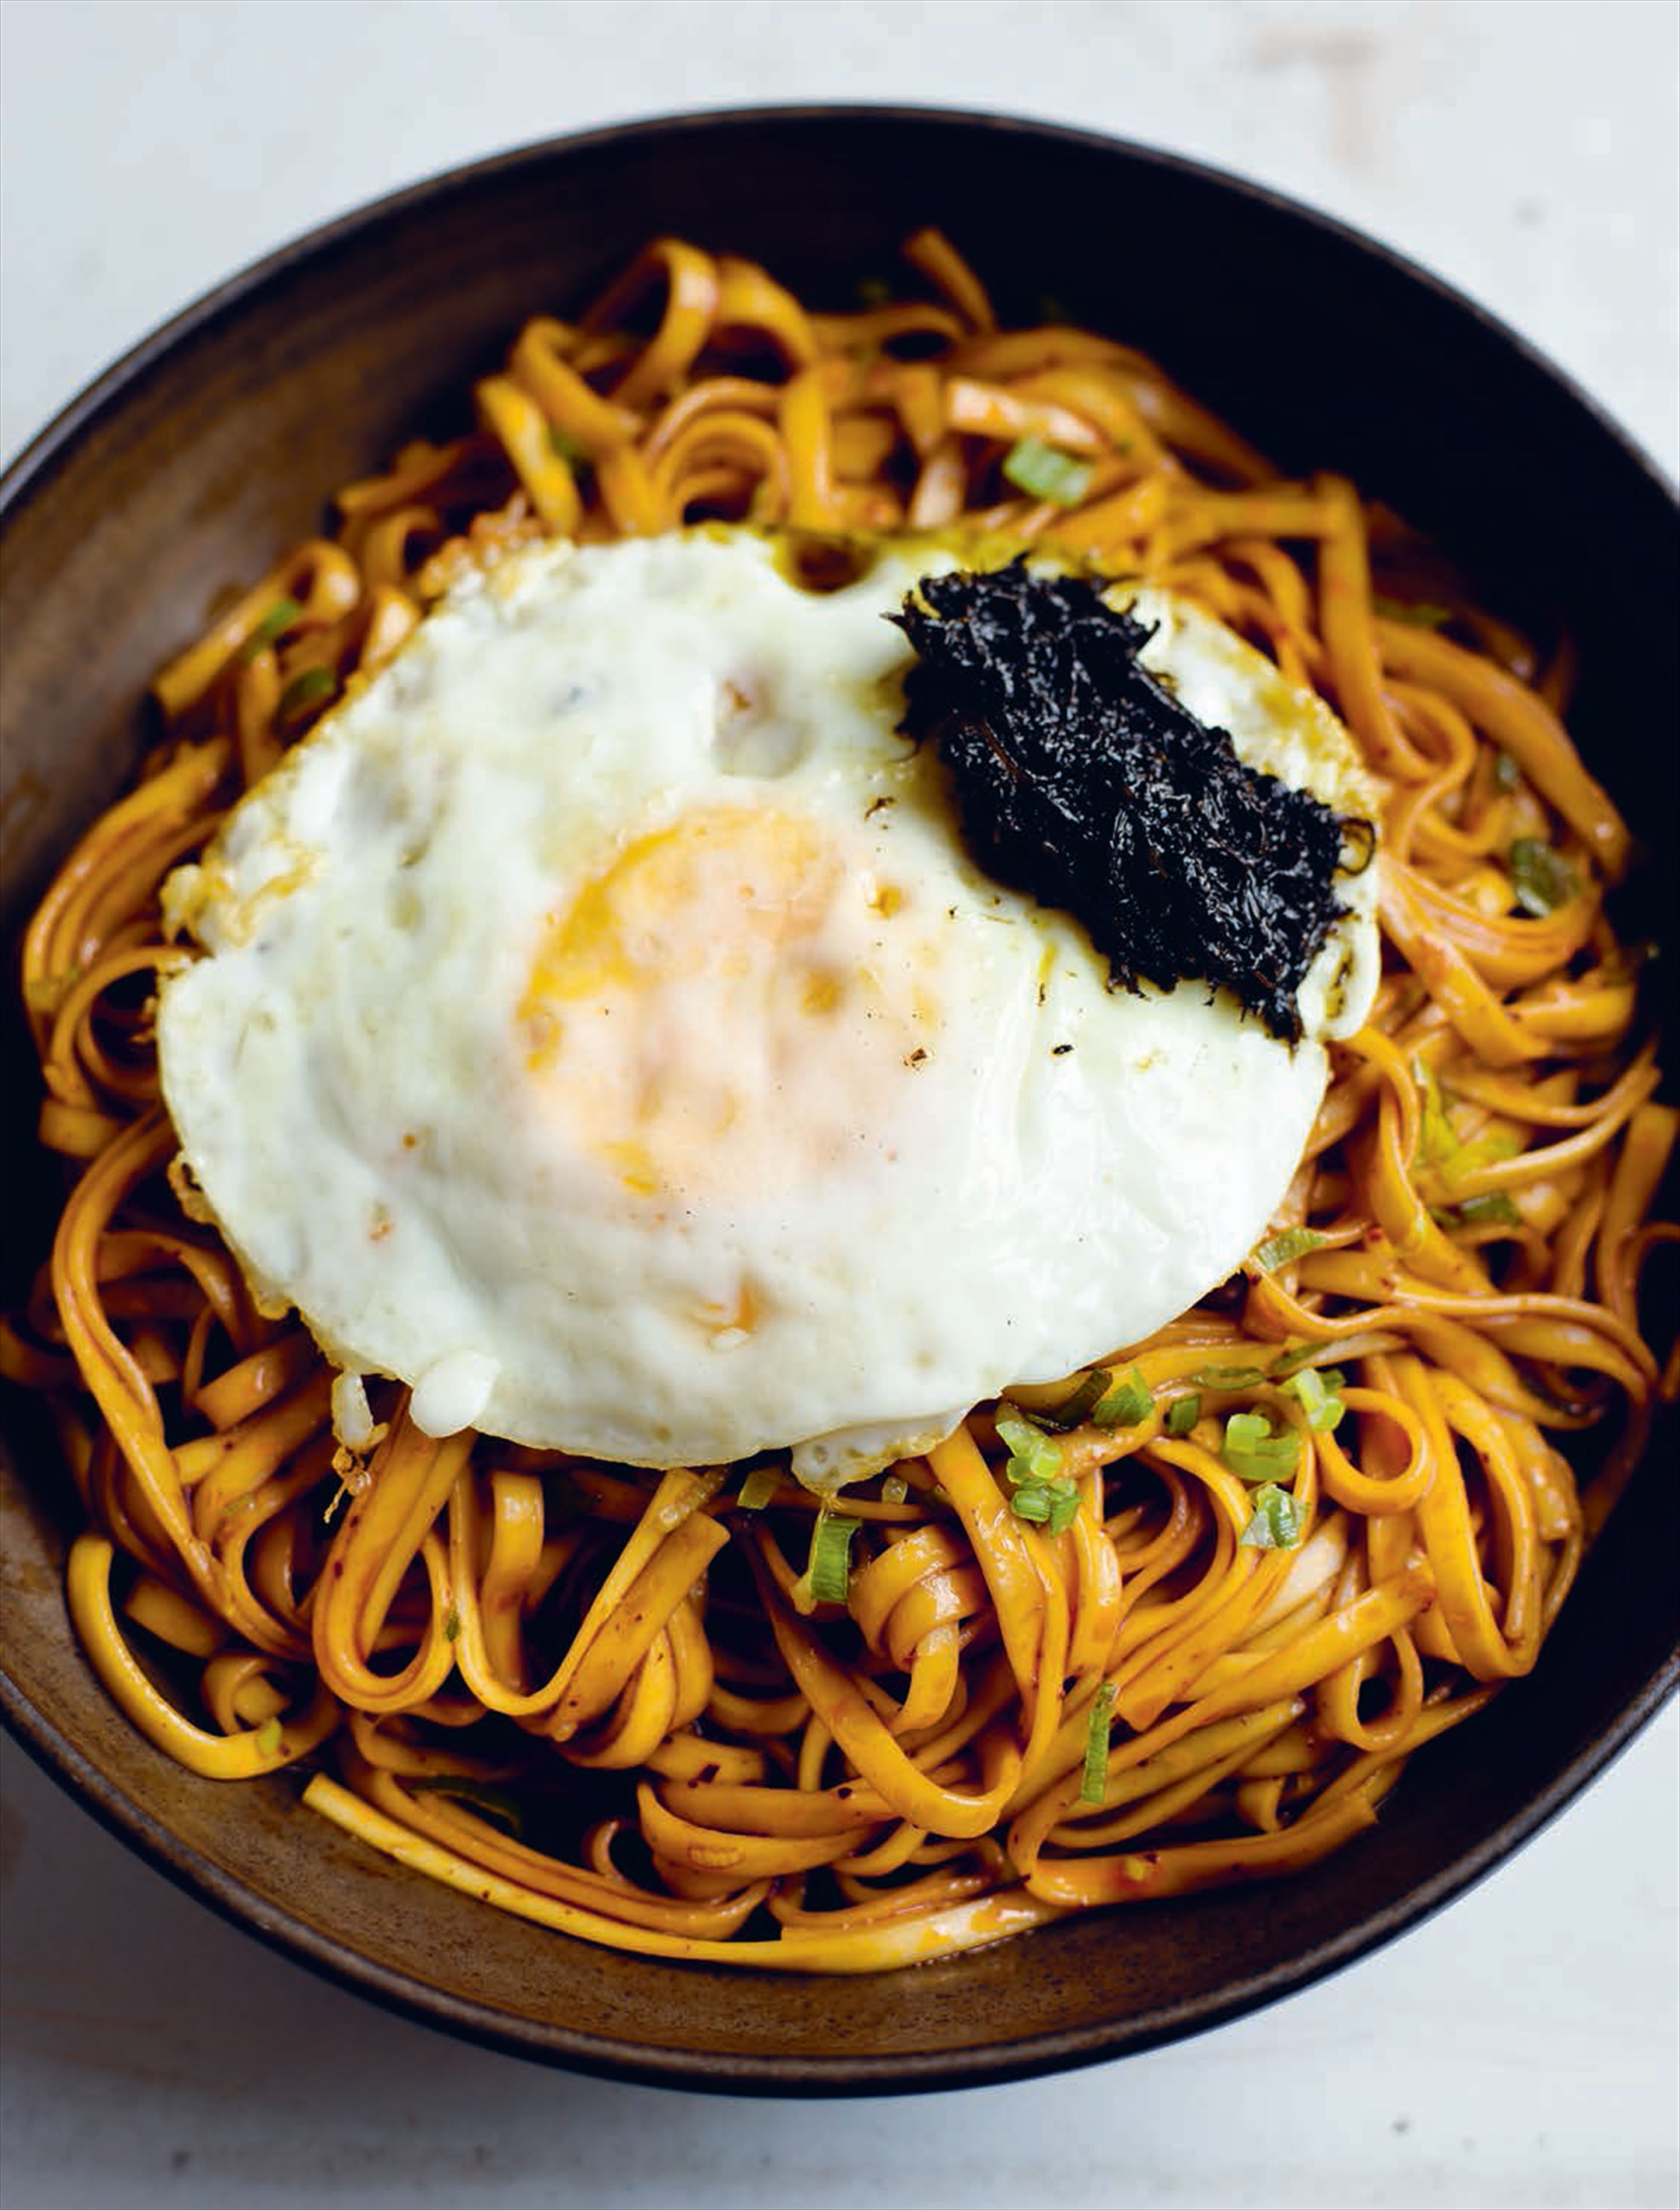 Fuchsia's emergency midnight noodles